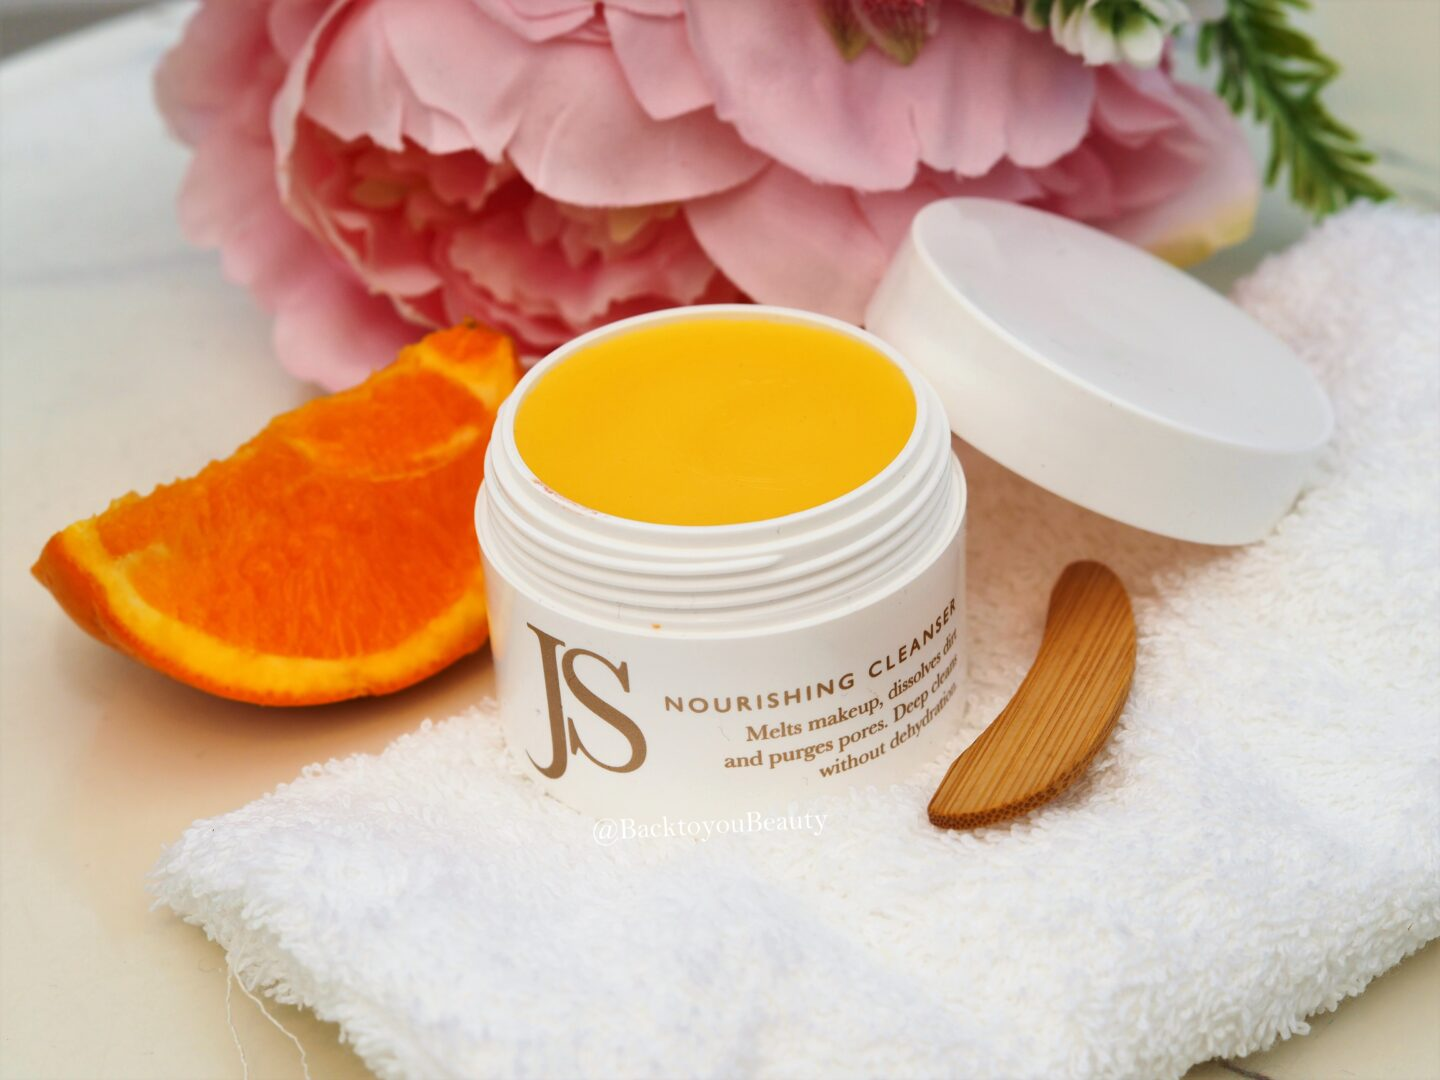 JS Nourishing Cleanser